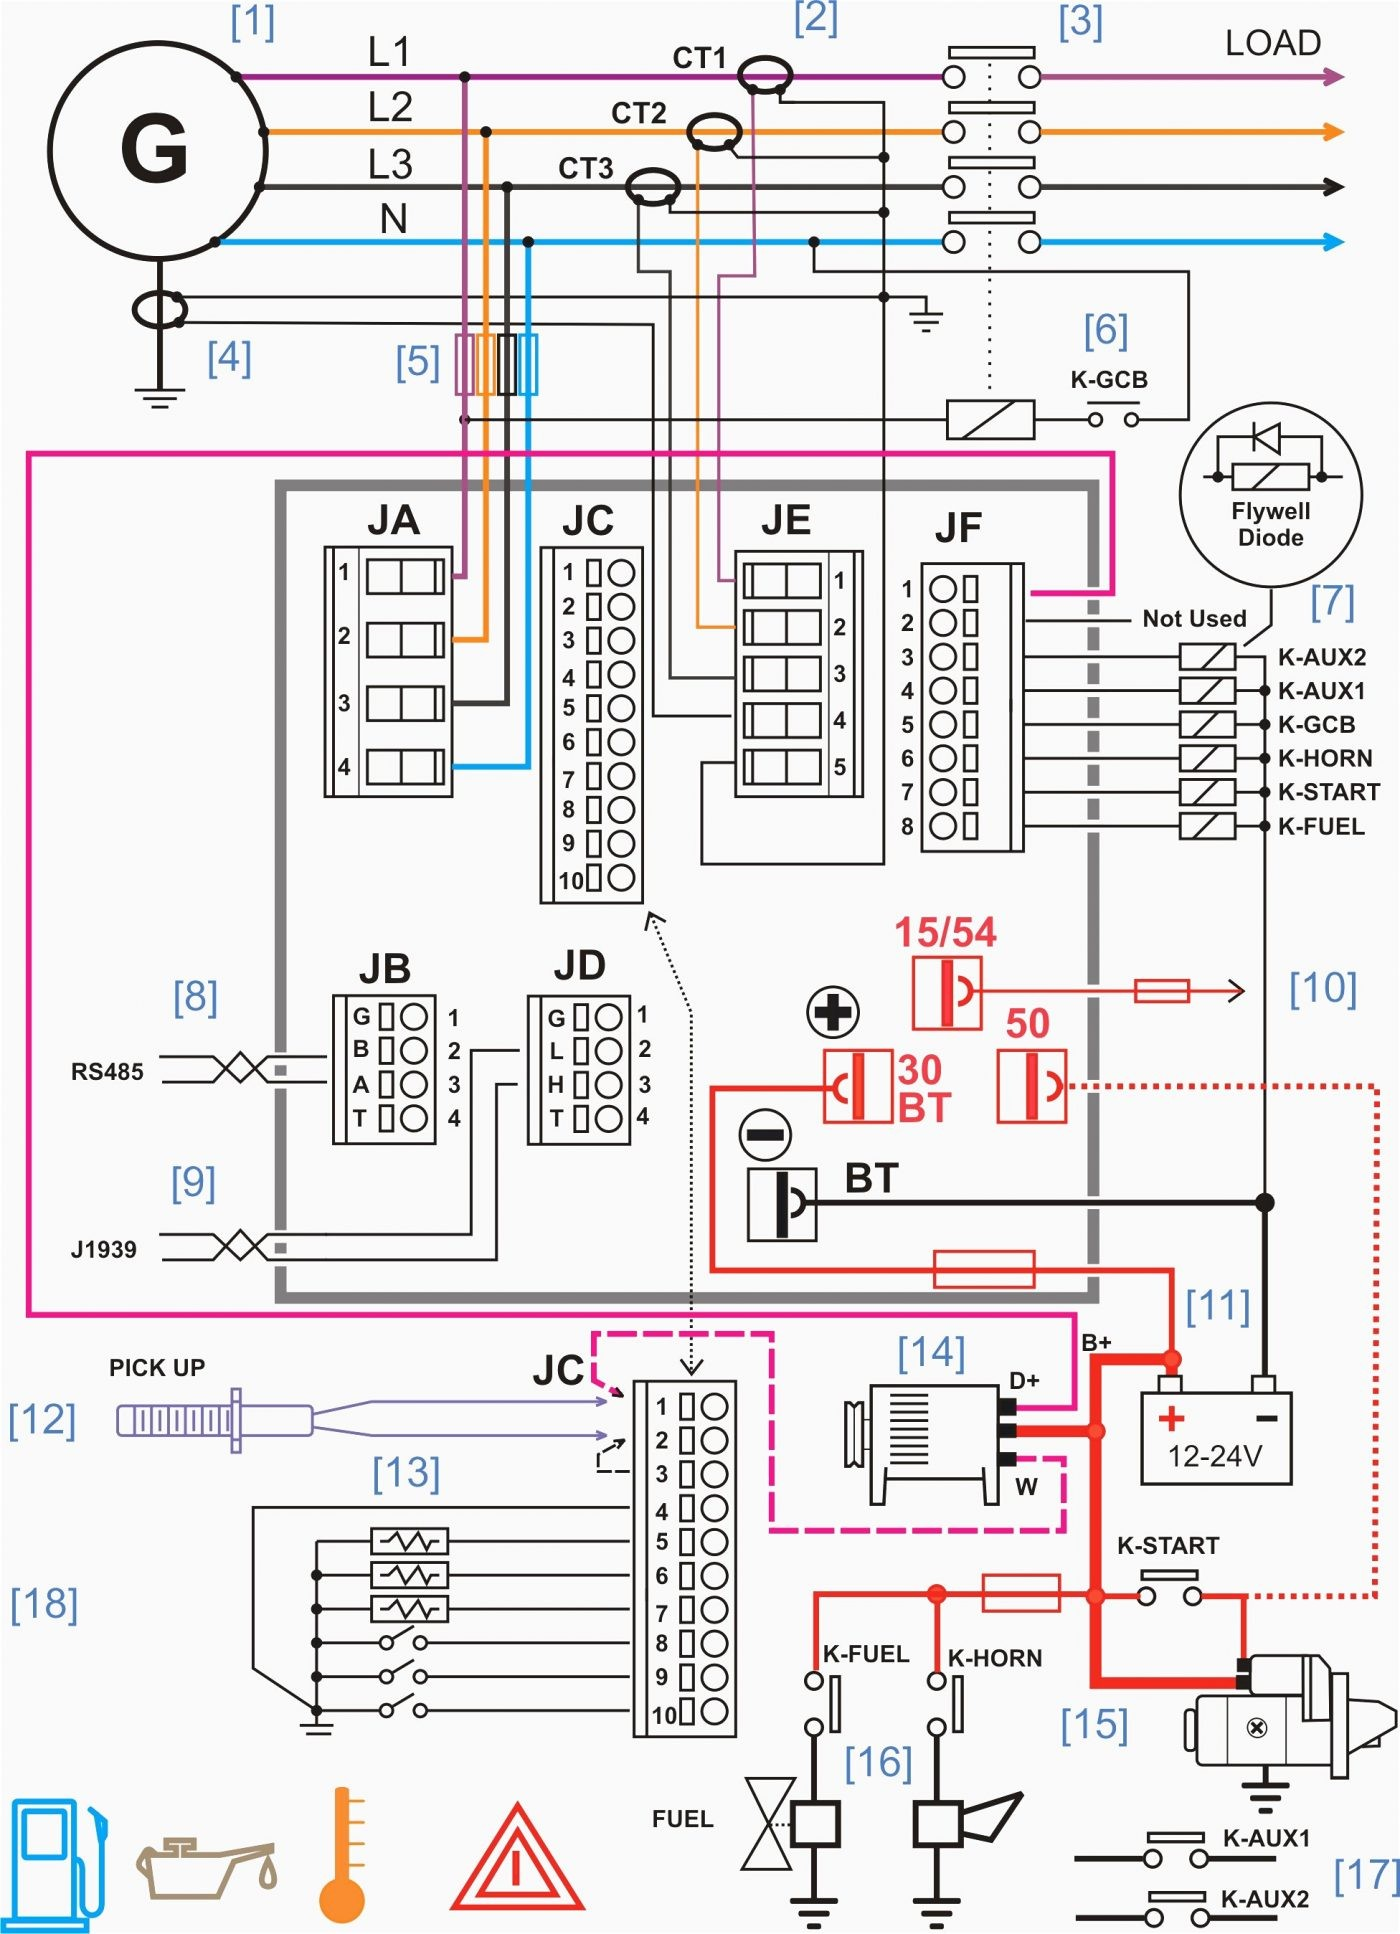 2006 Dodge Charger Engine Diagram 1934 Dodge Wiring Diagrams Wiring Diagram Of 2006 Dodge Charger Engine Diagram